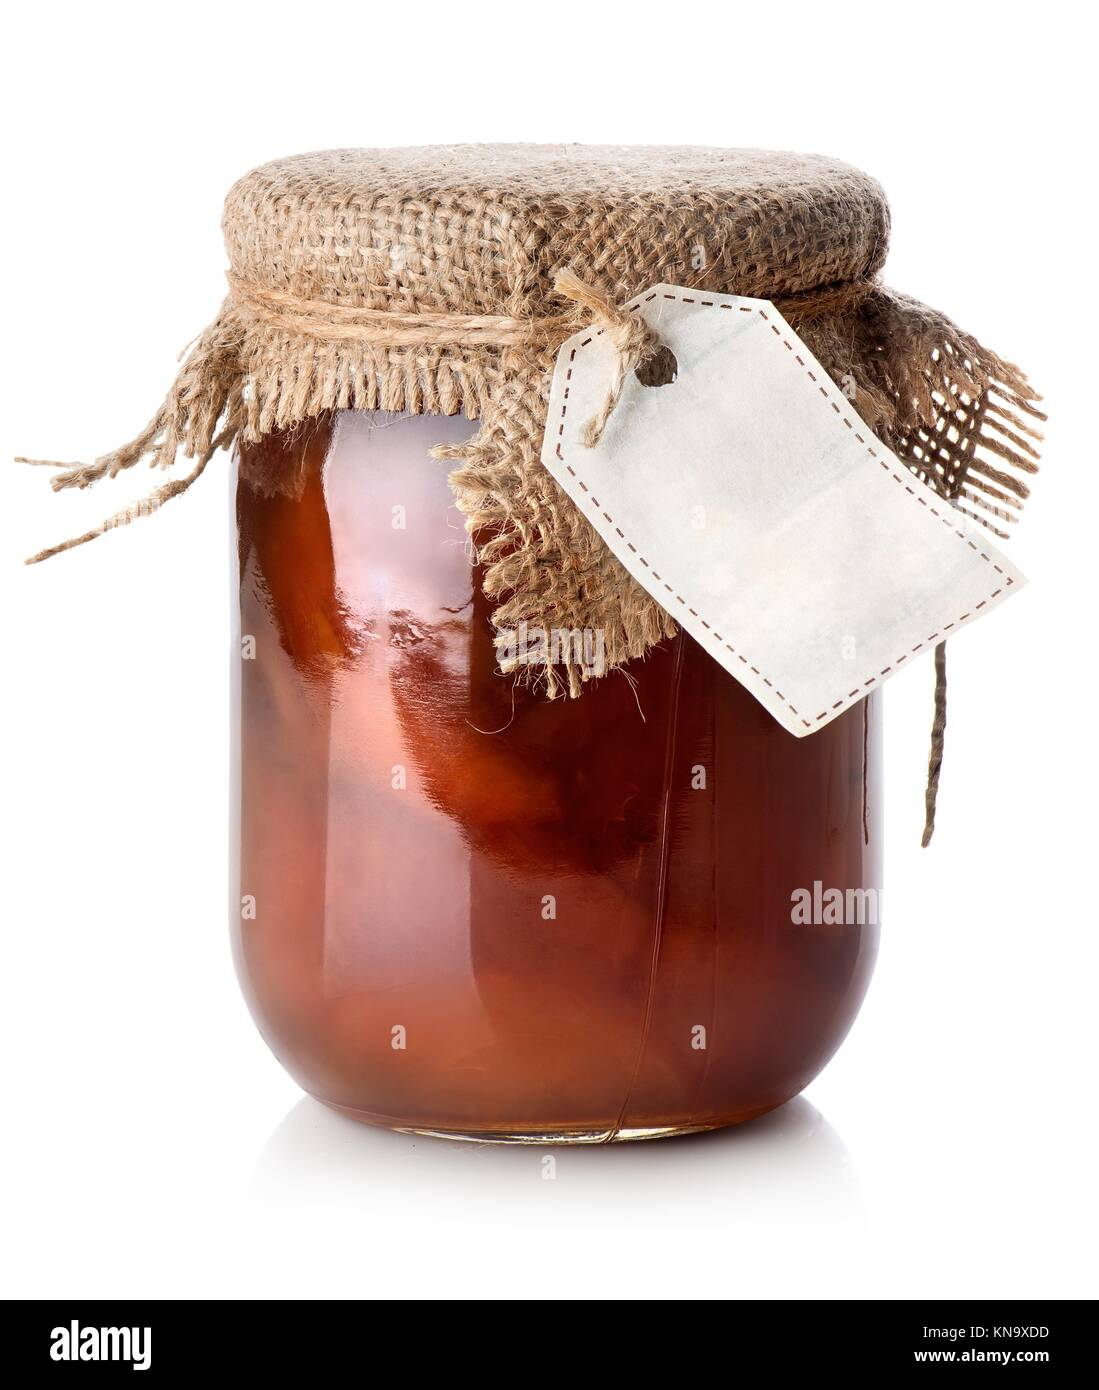 Jar of confiture isolated on a white background. - Stock Image